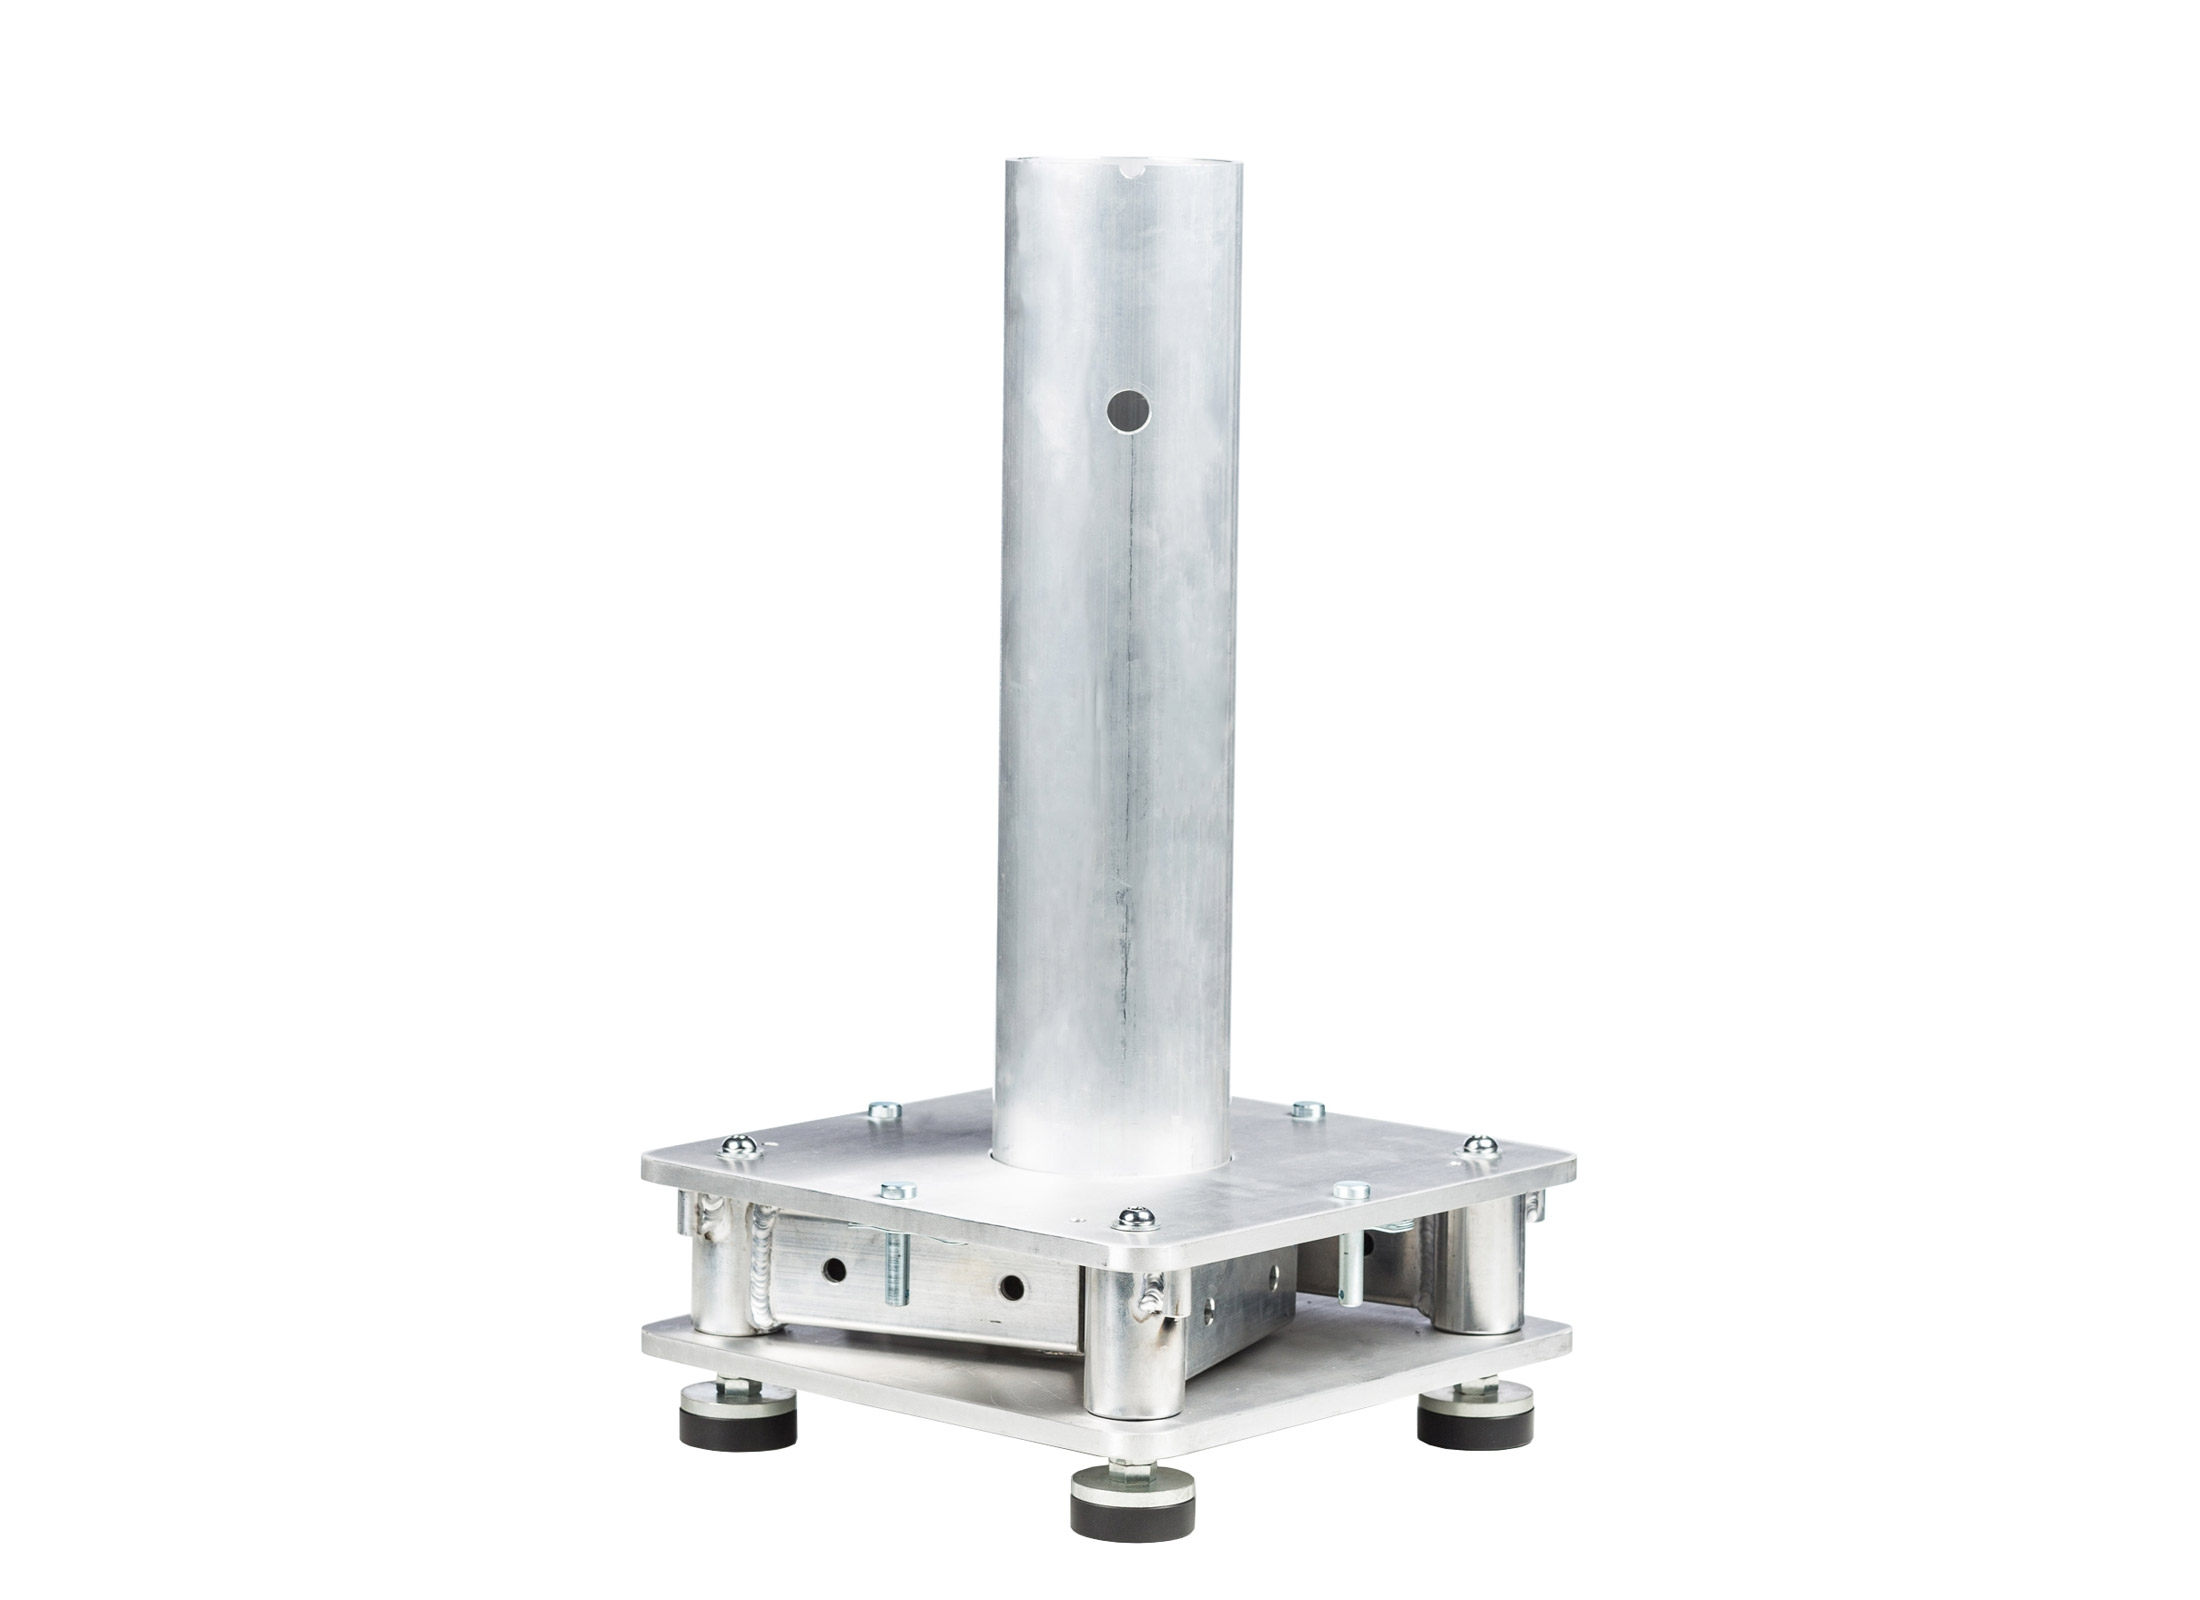 Licht Projector Baby : Global truss f34 bt baby tower base plate online at low prices at